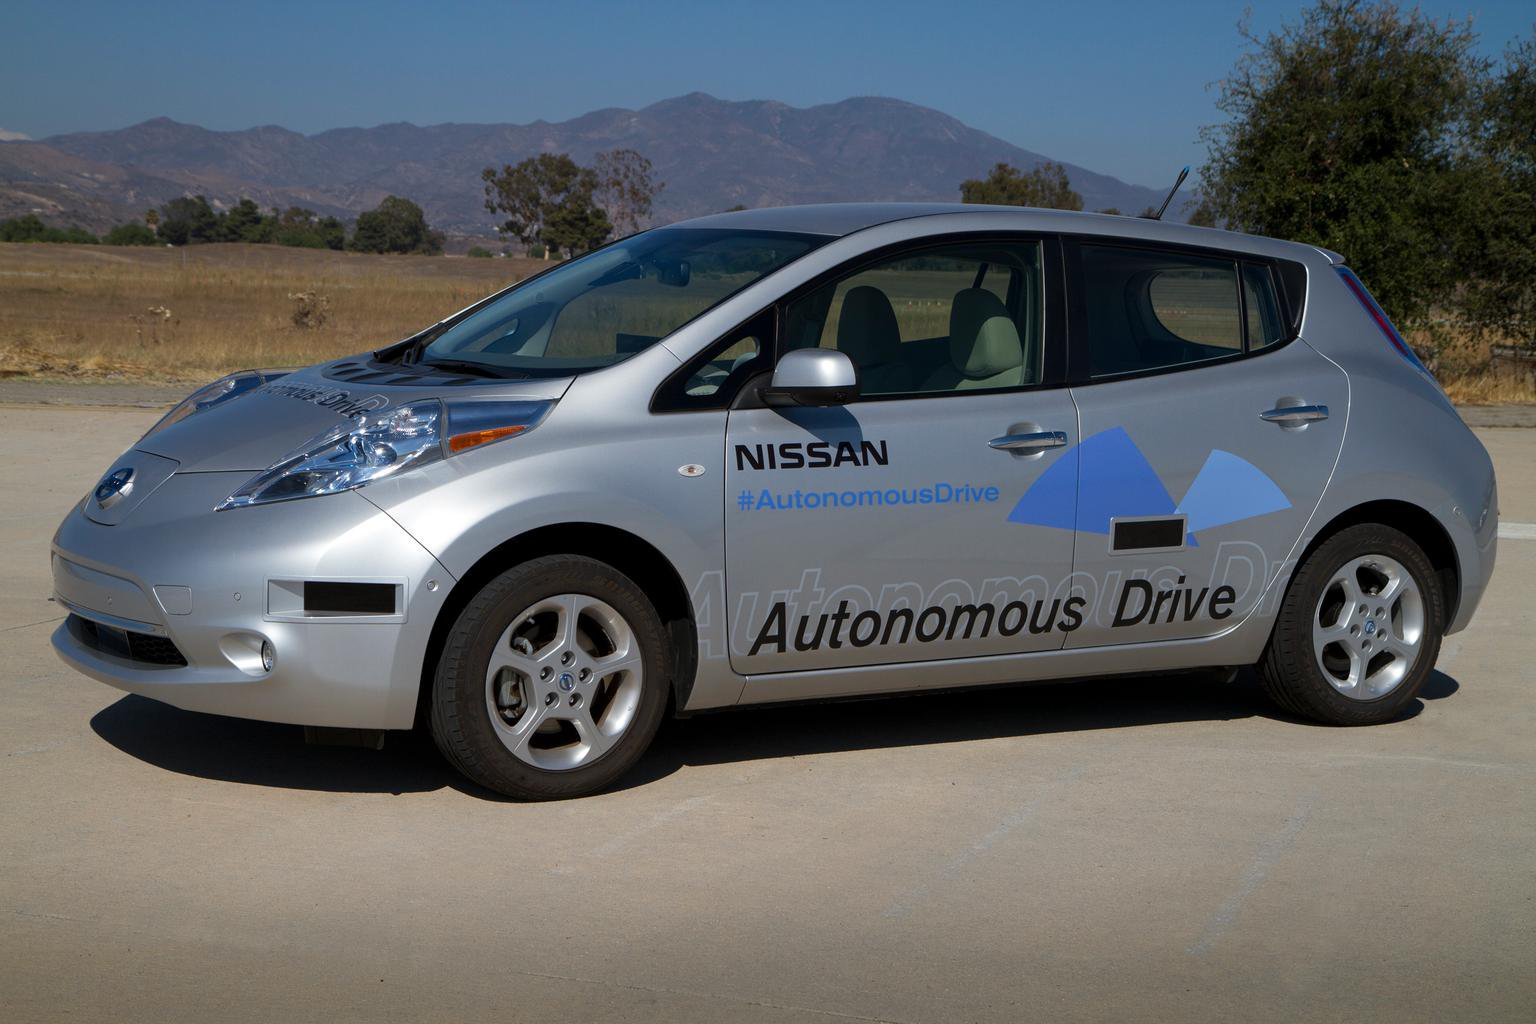 Nissan self-driving cars by 2020